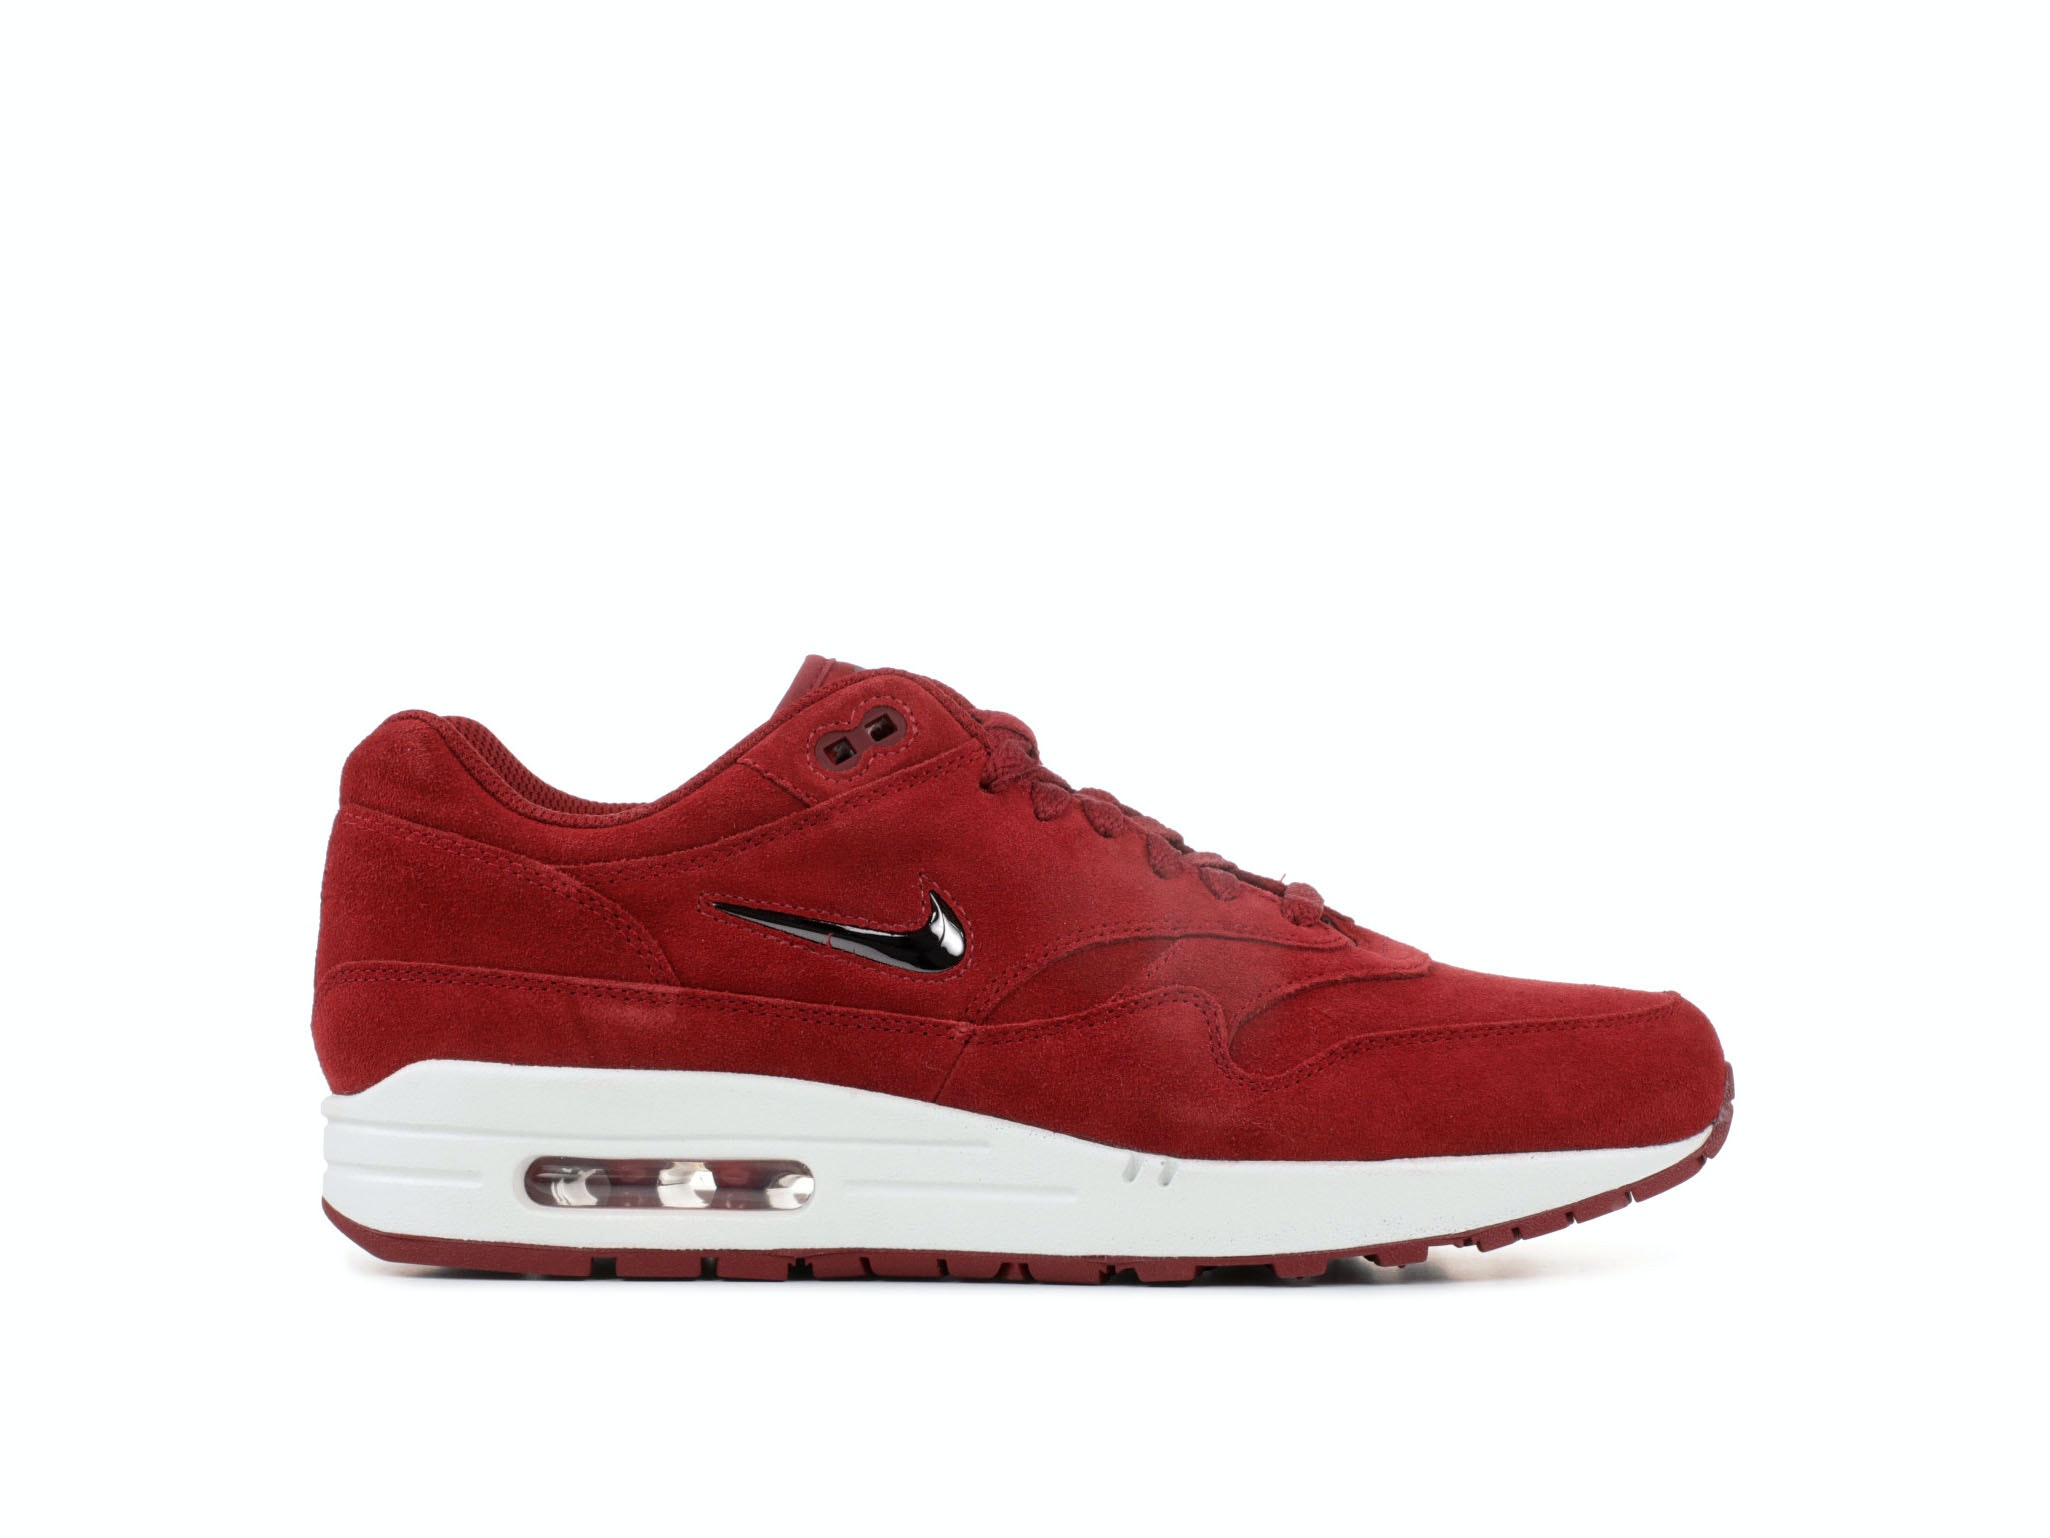 super popular f49c1 322f5 Air Max 1 Premium SC Jewel Team Red